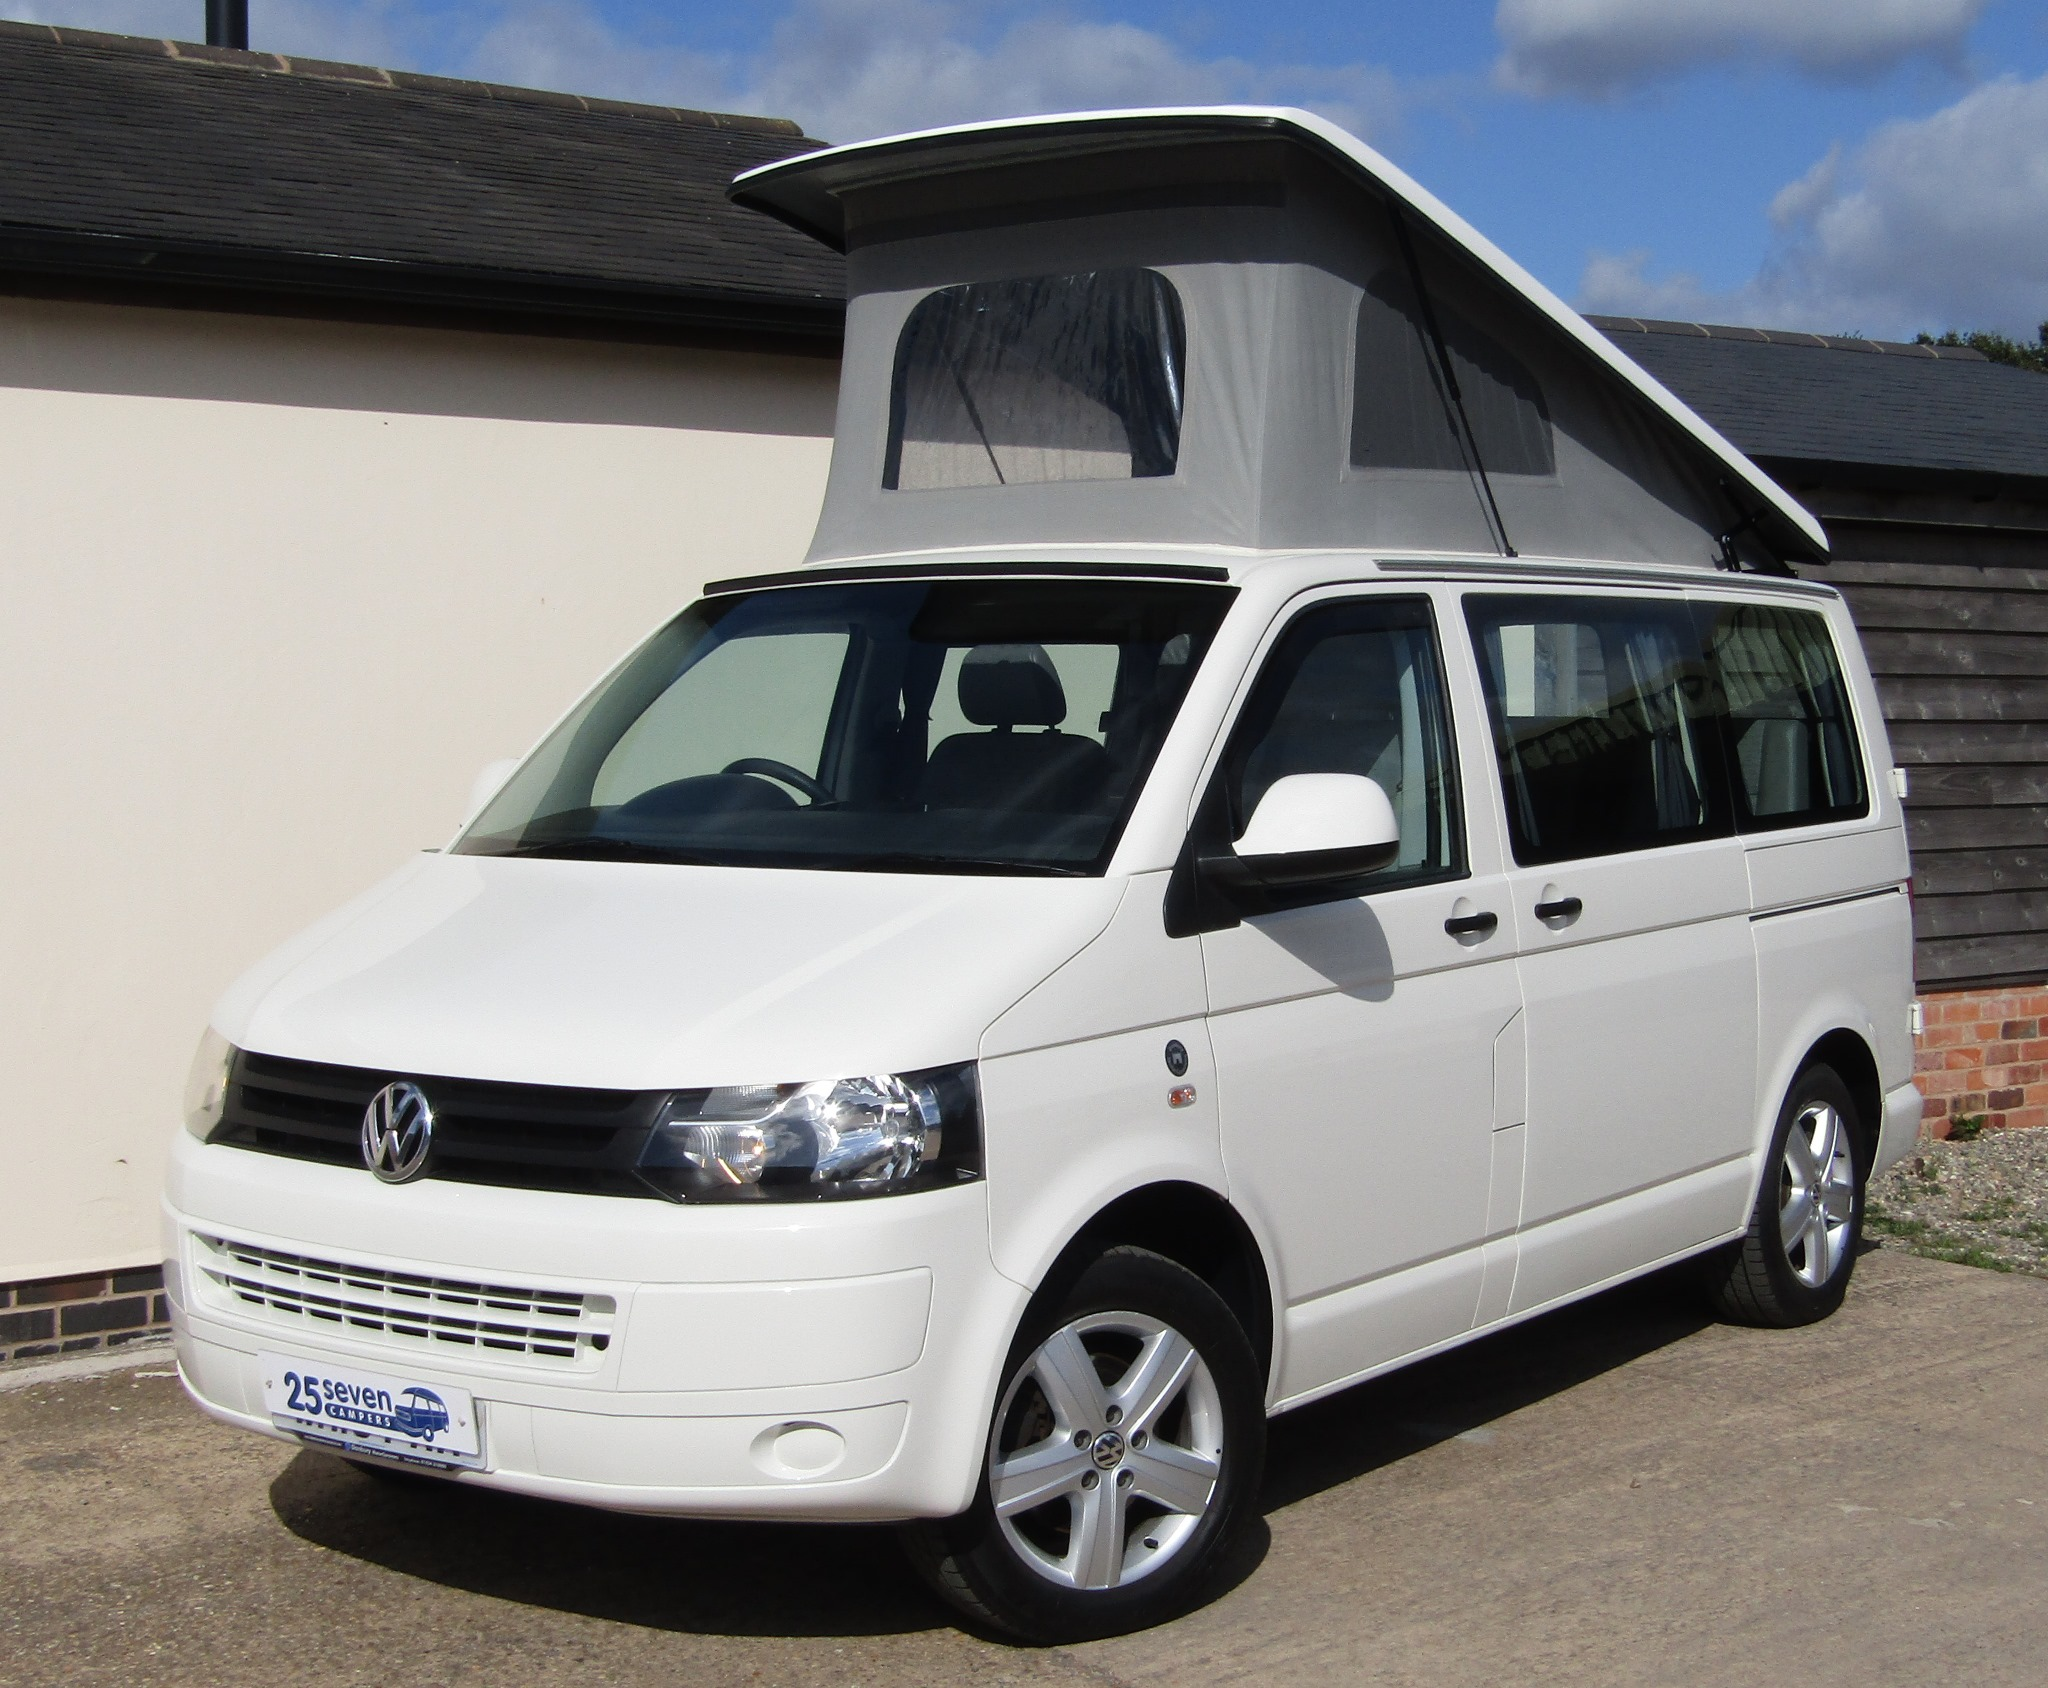 VW Campers for Sale | Used Campers for Sale | 25seven